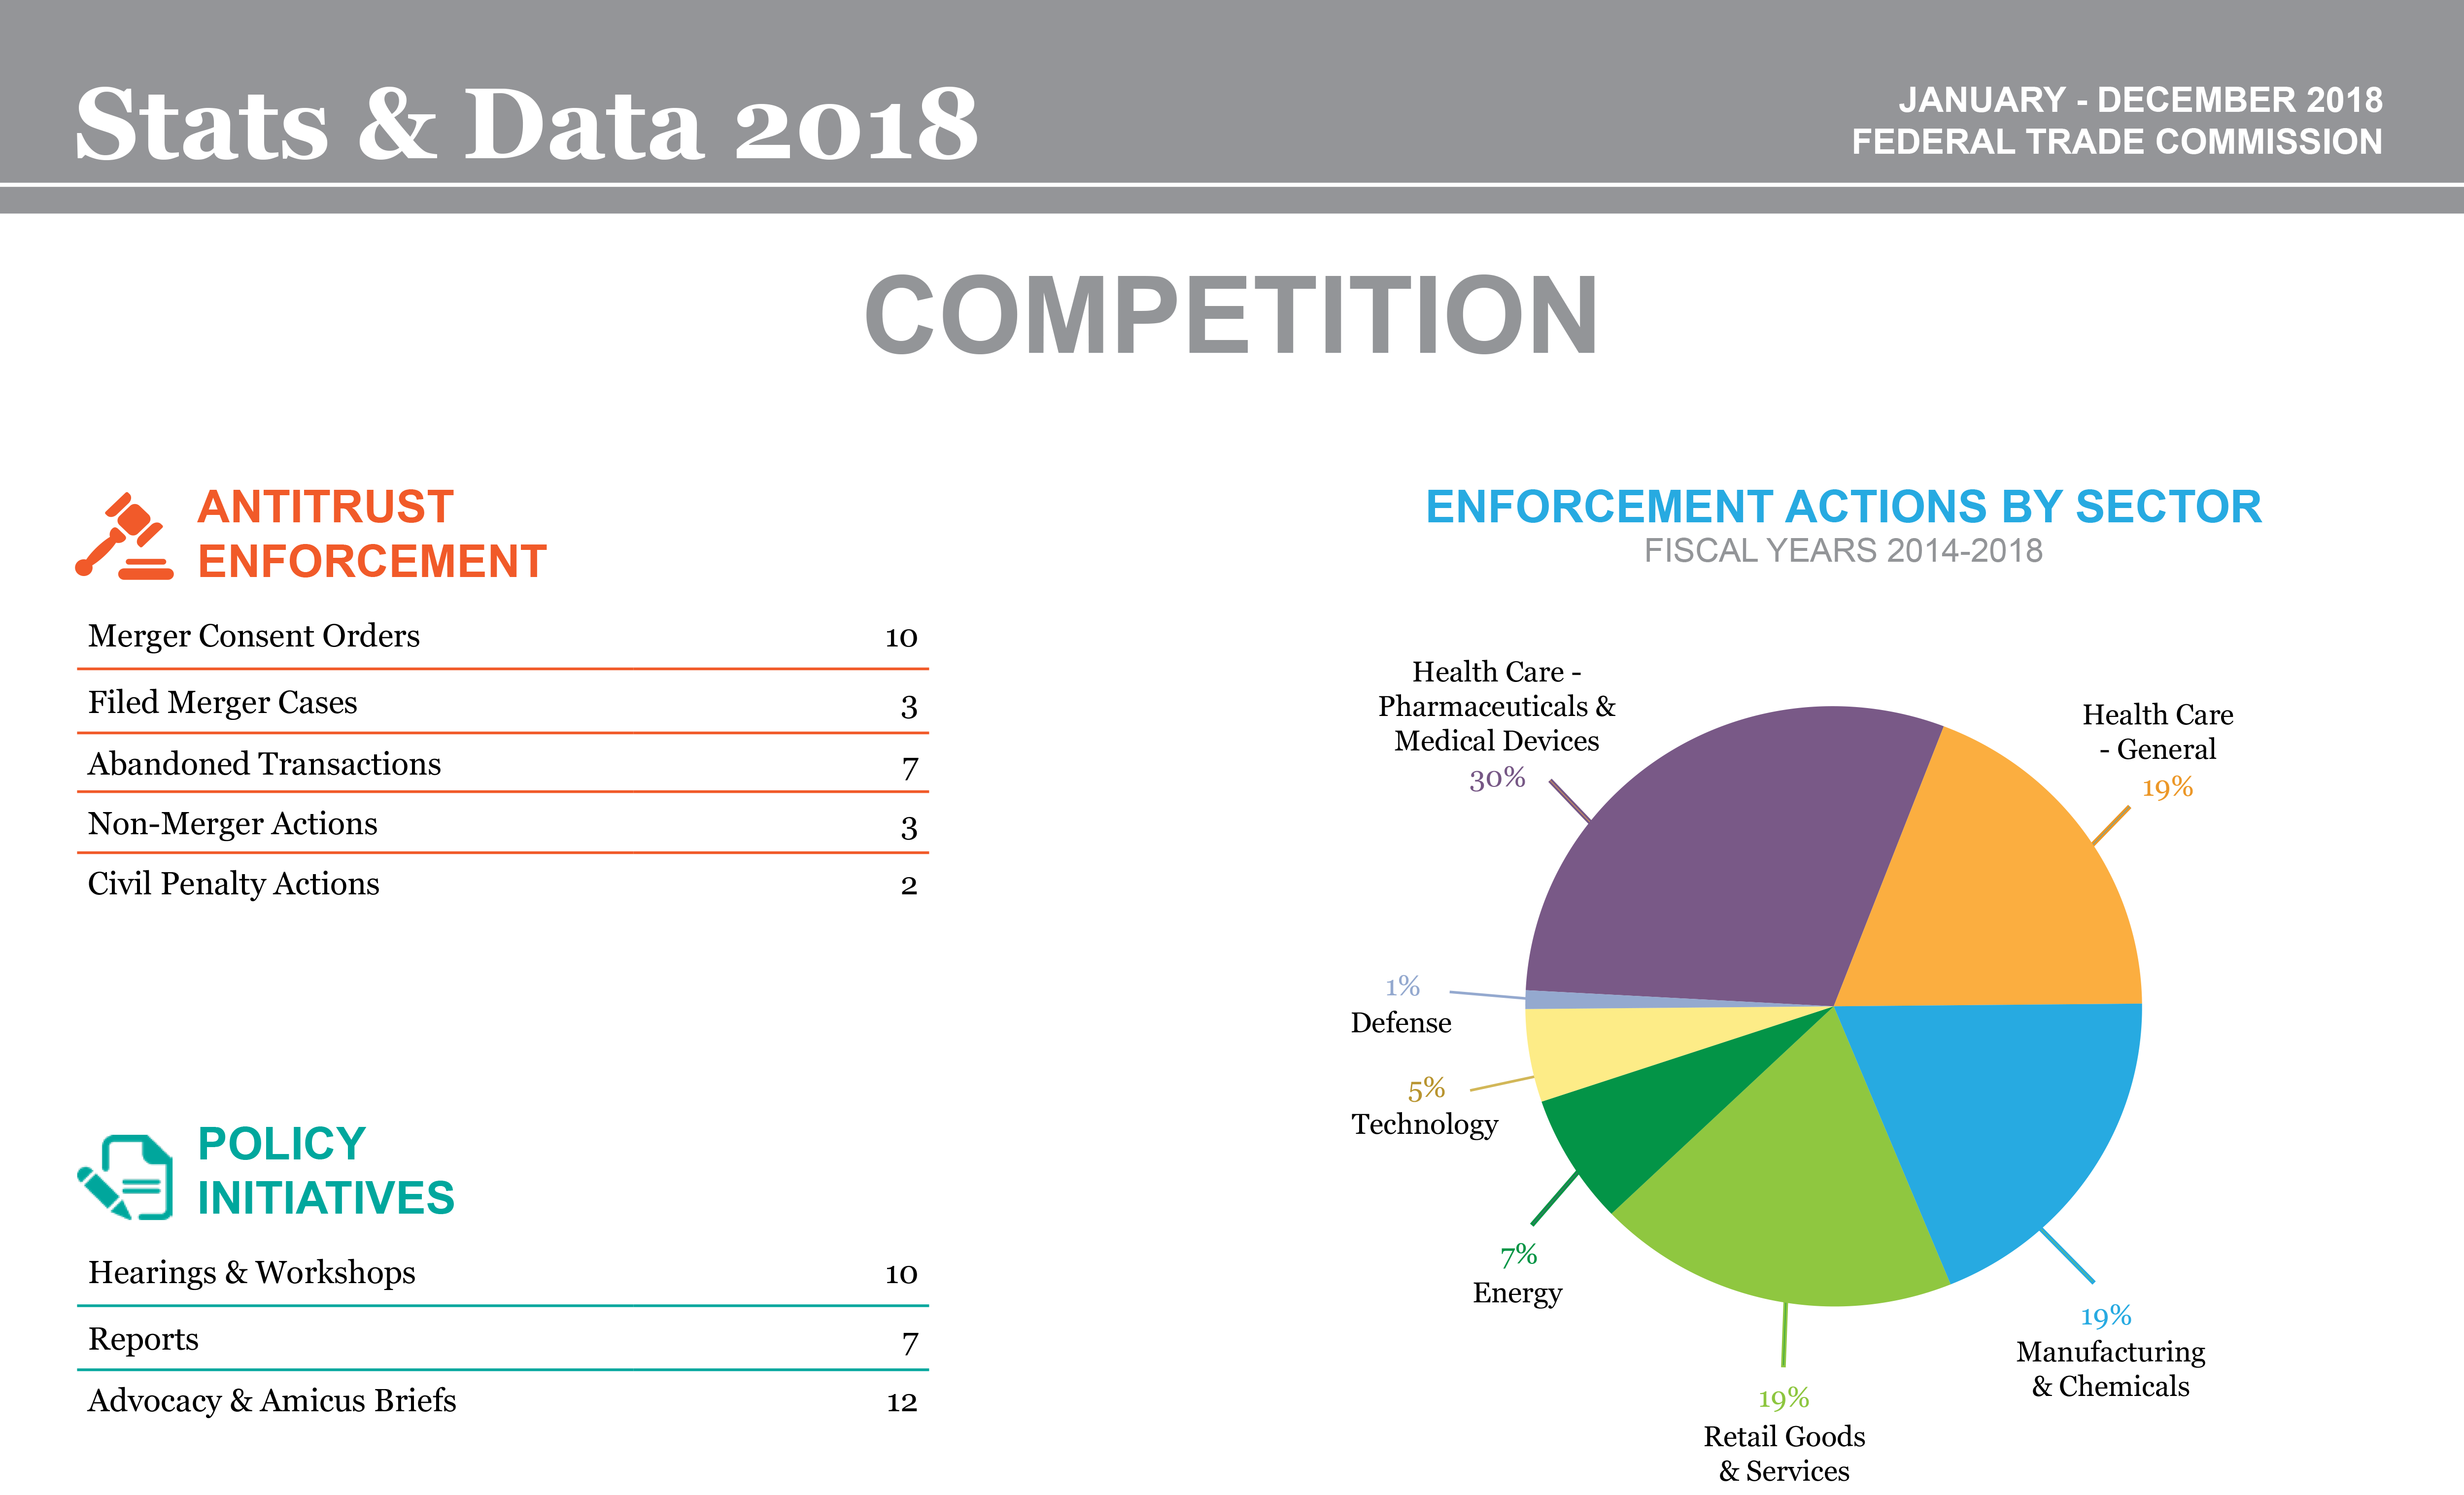 Stats & Data 2018 Competition infographic